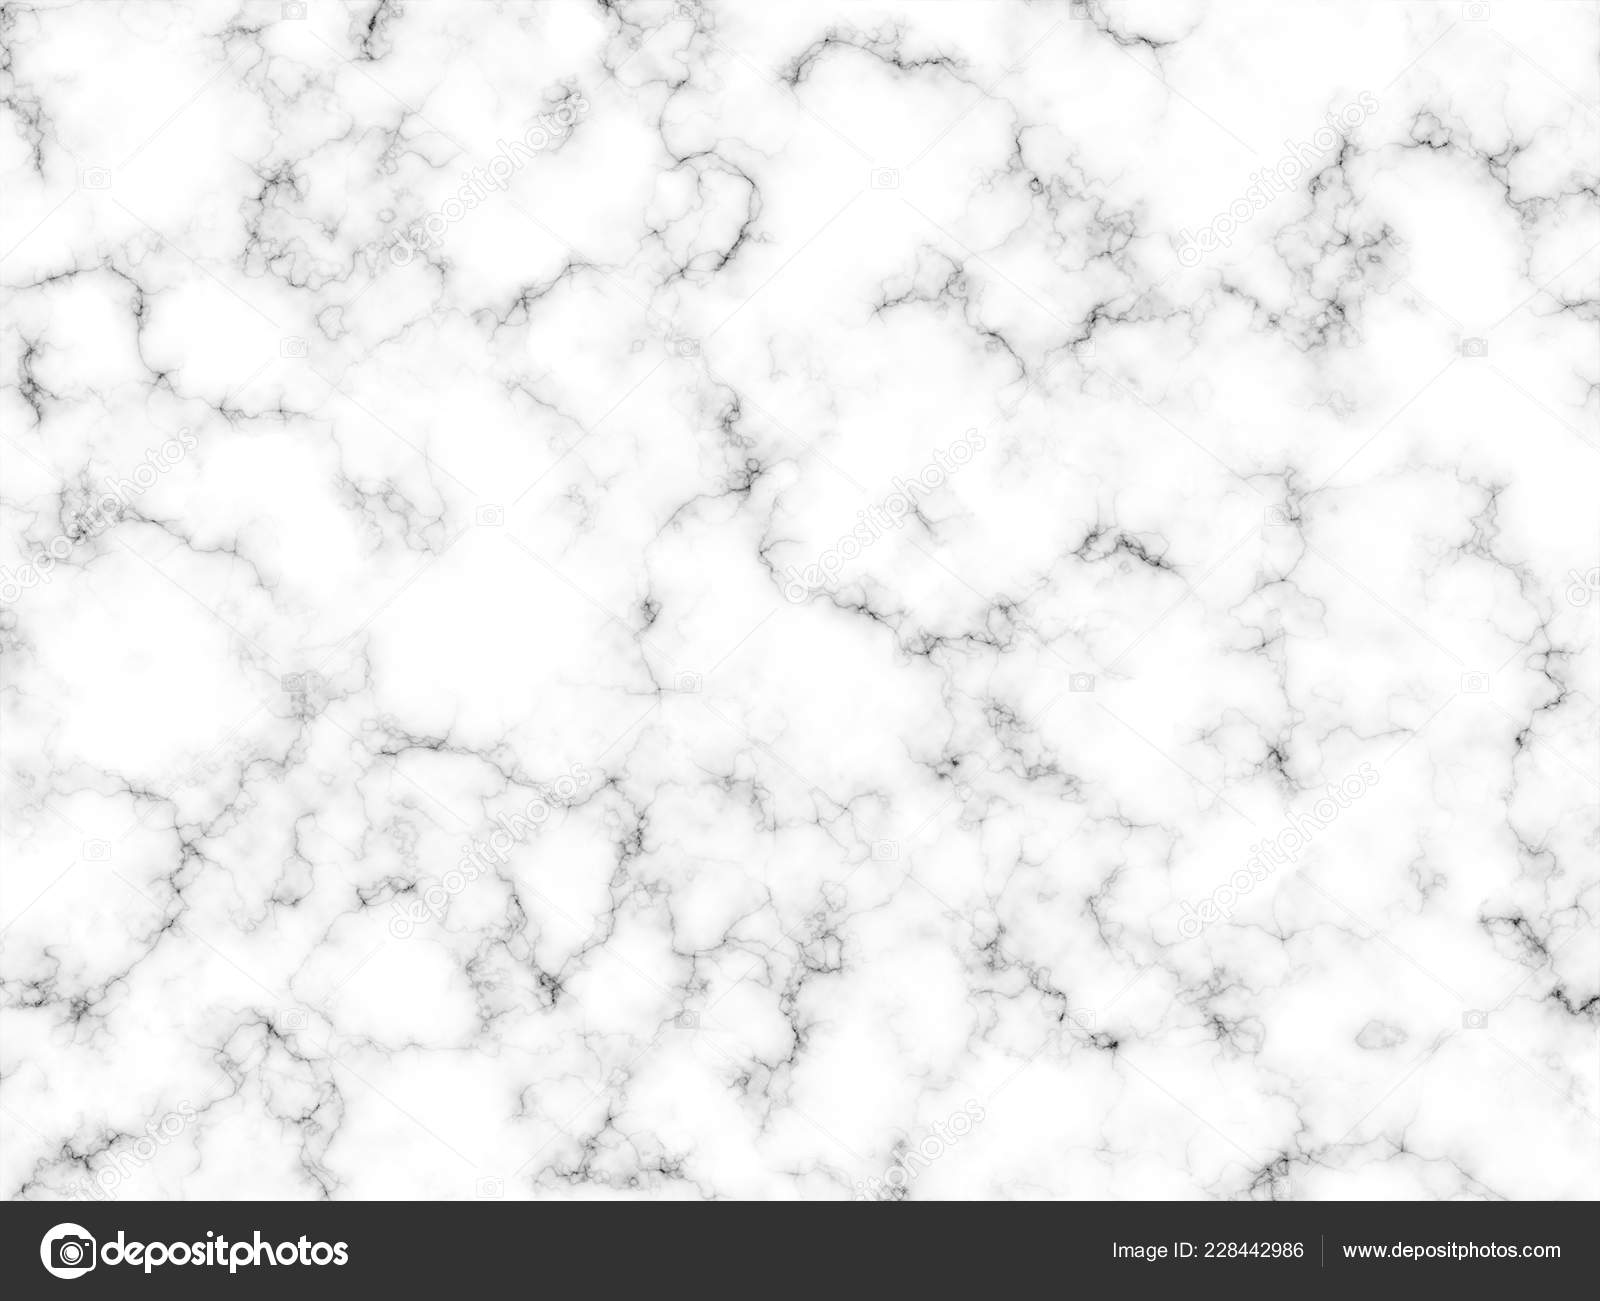 ᐈ Marble Laptop Wallpaper Stock Photos Royalty Free Marble Surface Images Download On Depositphotos